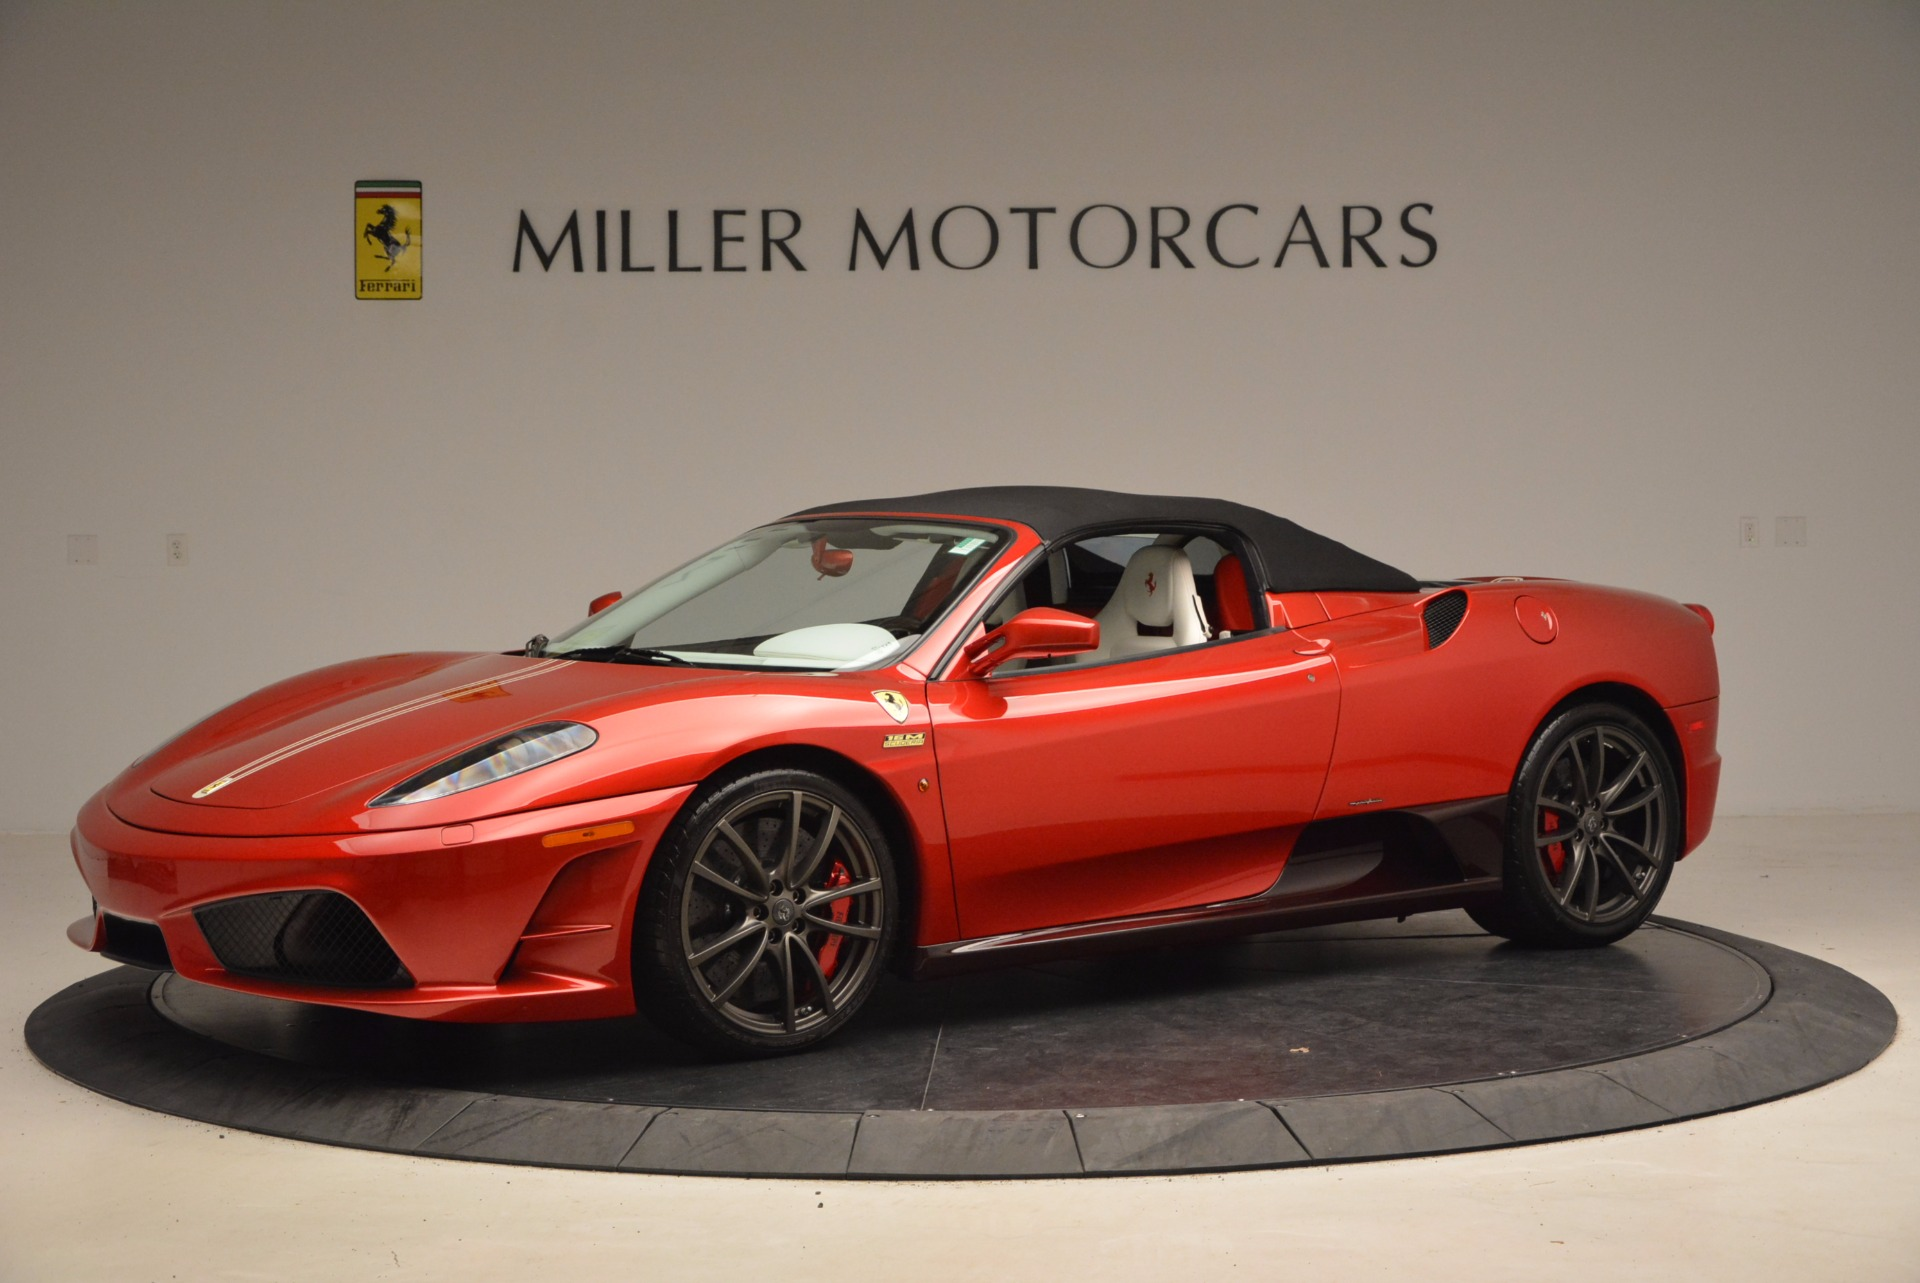 Used 2009 Ferrari F430 Scuderia 16M For Sale In Westport, CT 1398_p14